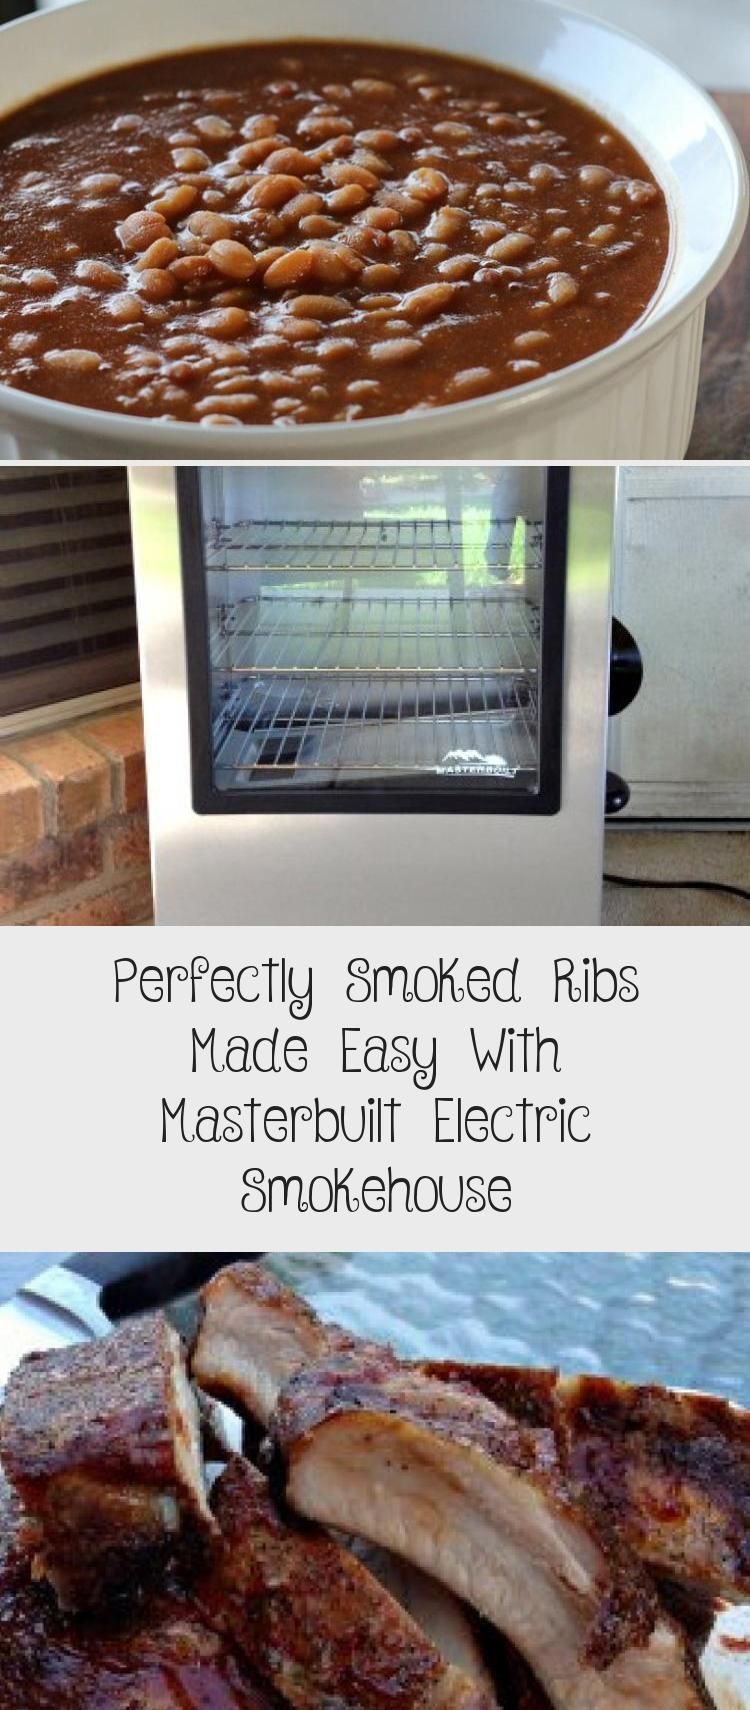 Looking For Masterbuilt Smoker Recipes These Smoked Ribs Are Amazing And So Eas In 2020 Smoked Ribs Recipes Moose Meat Recipes